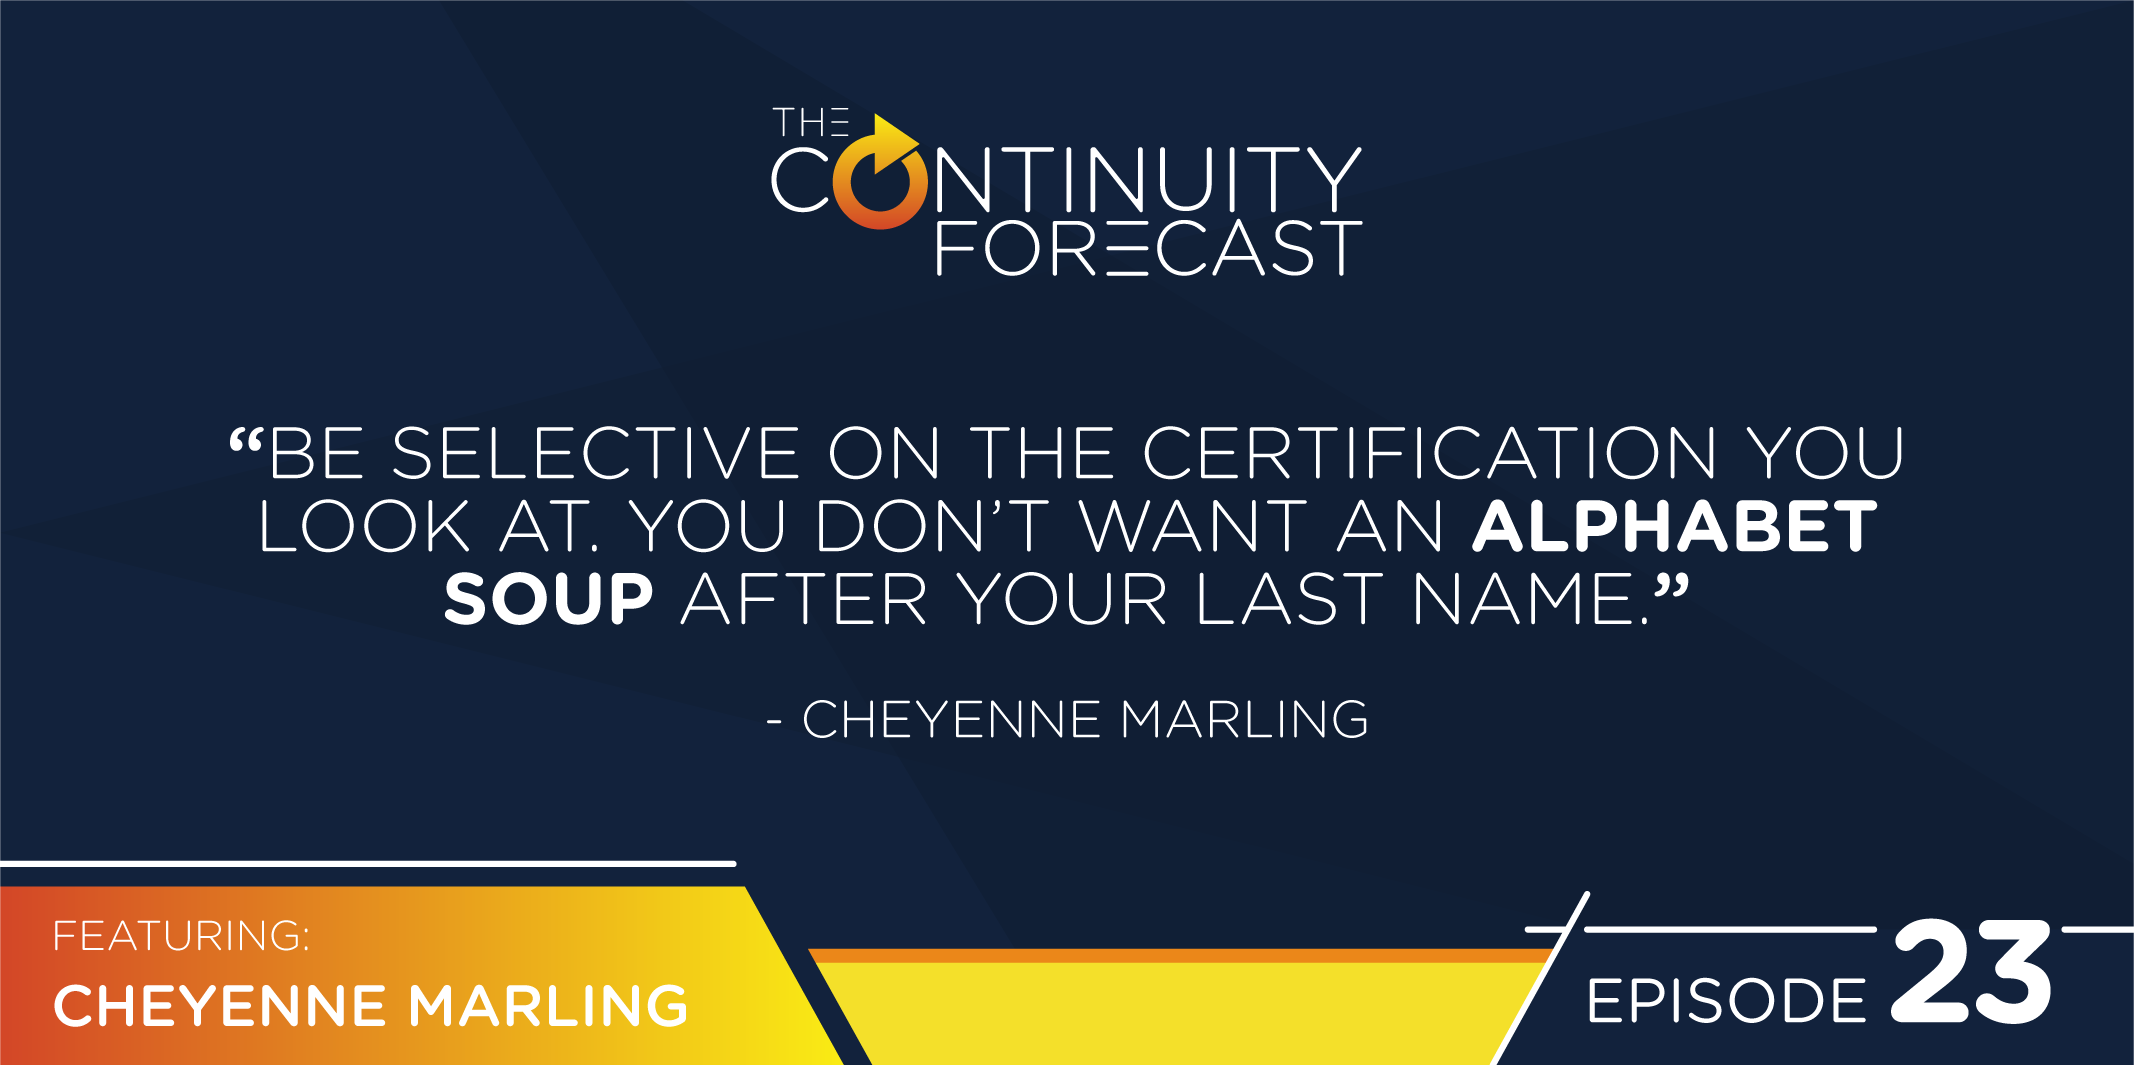 Be selective on the certification you look at. You don't want an alphabet soup after your last name.